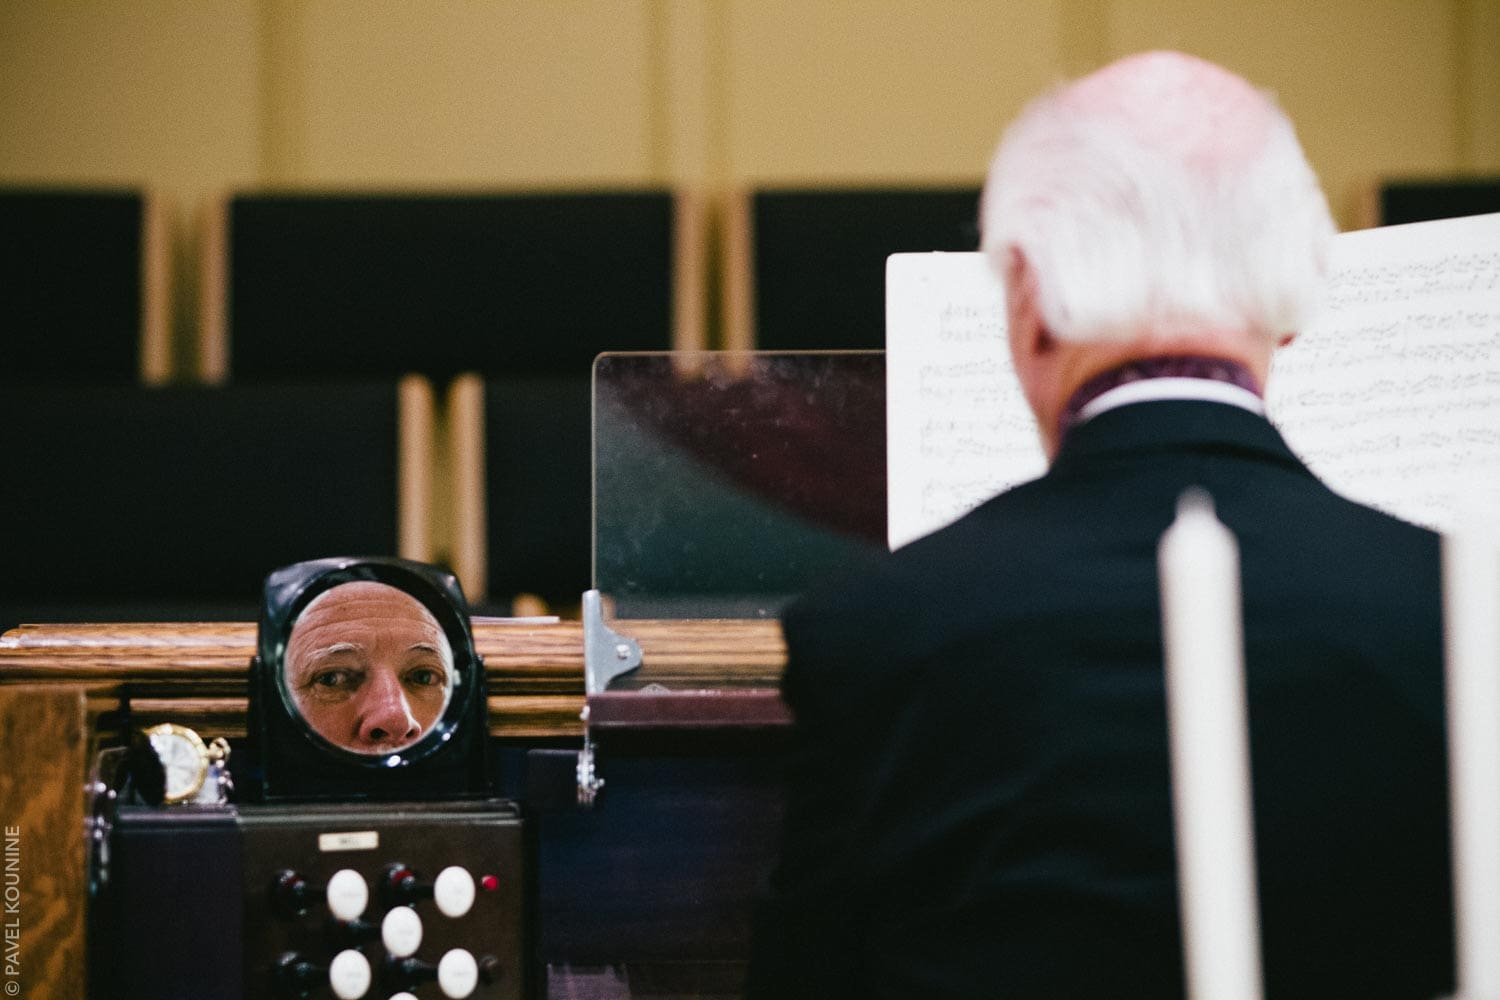 During the ceremony, a reflection of the organ player.